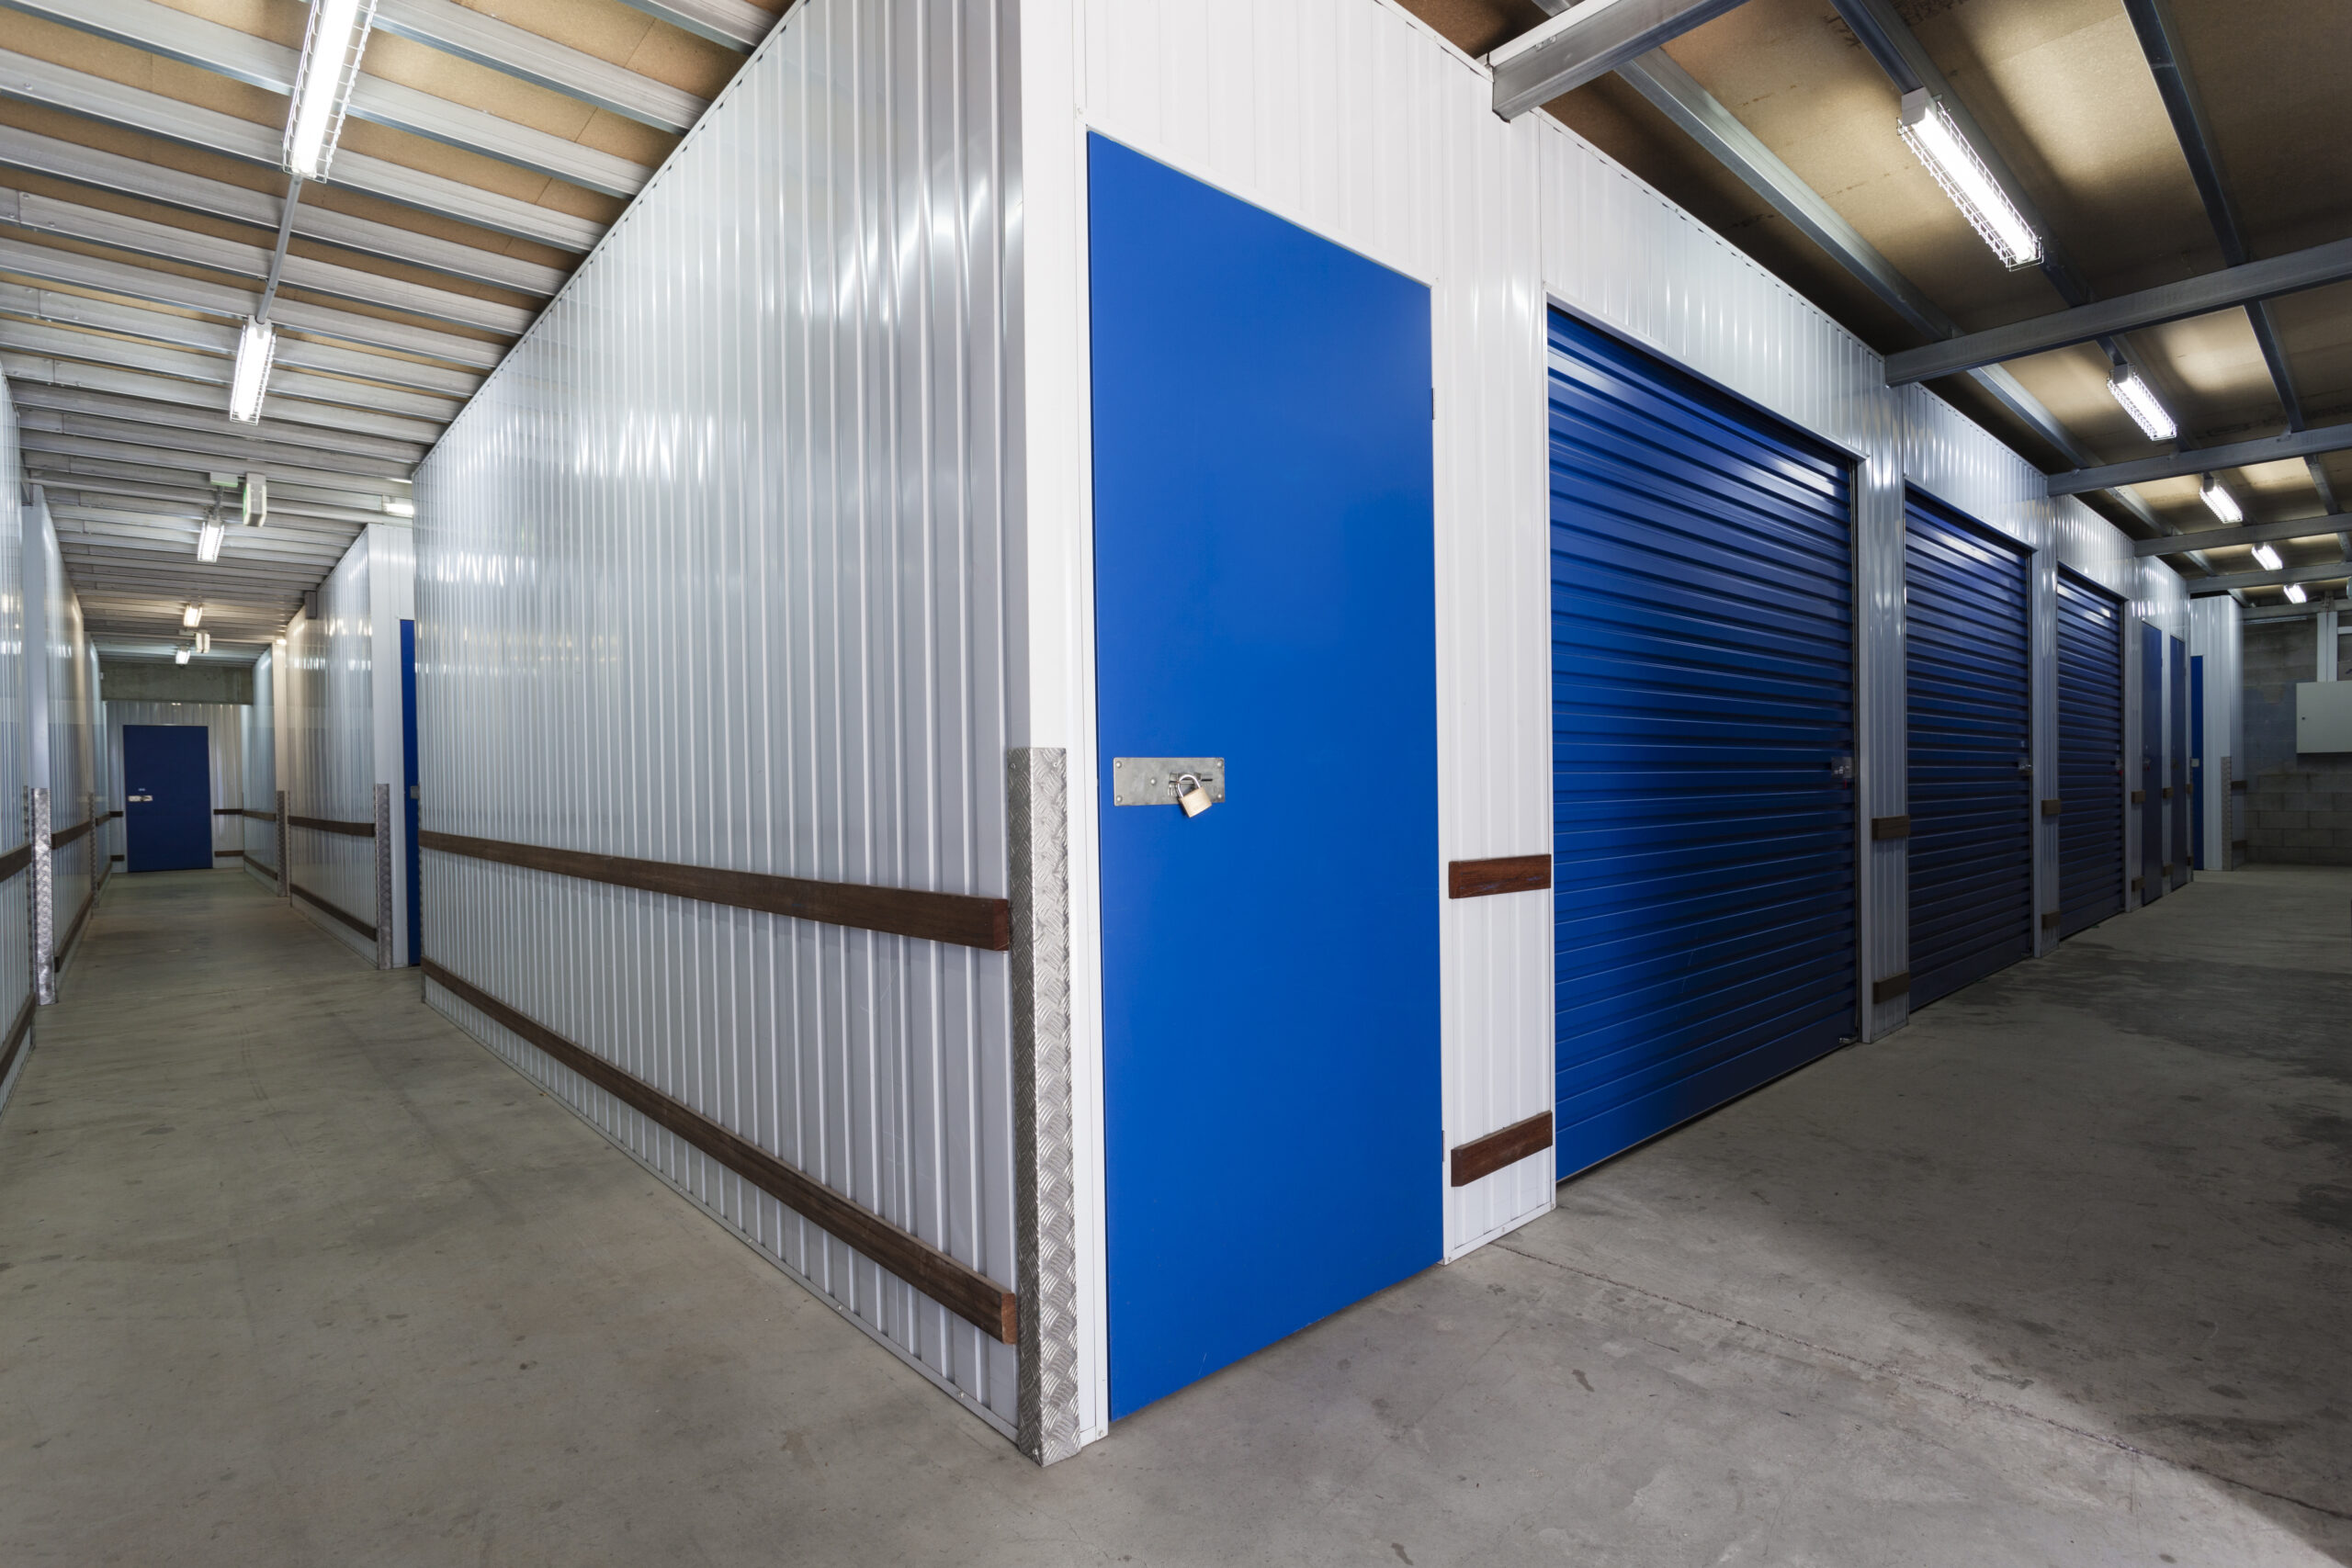 Indoor storage units in a warehouse